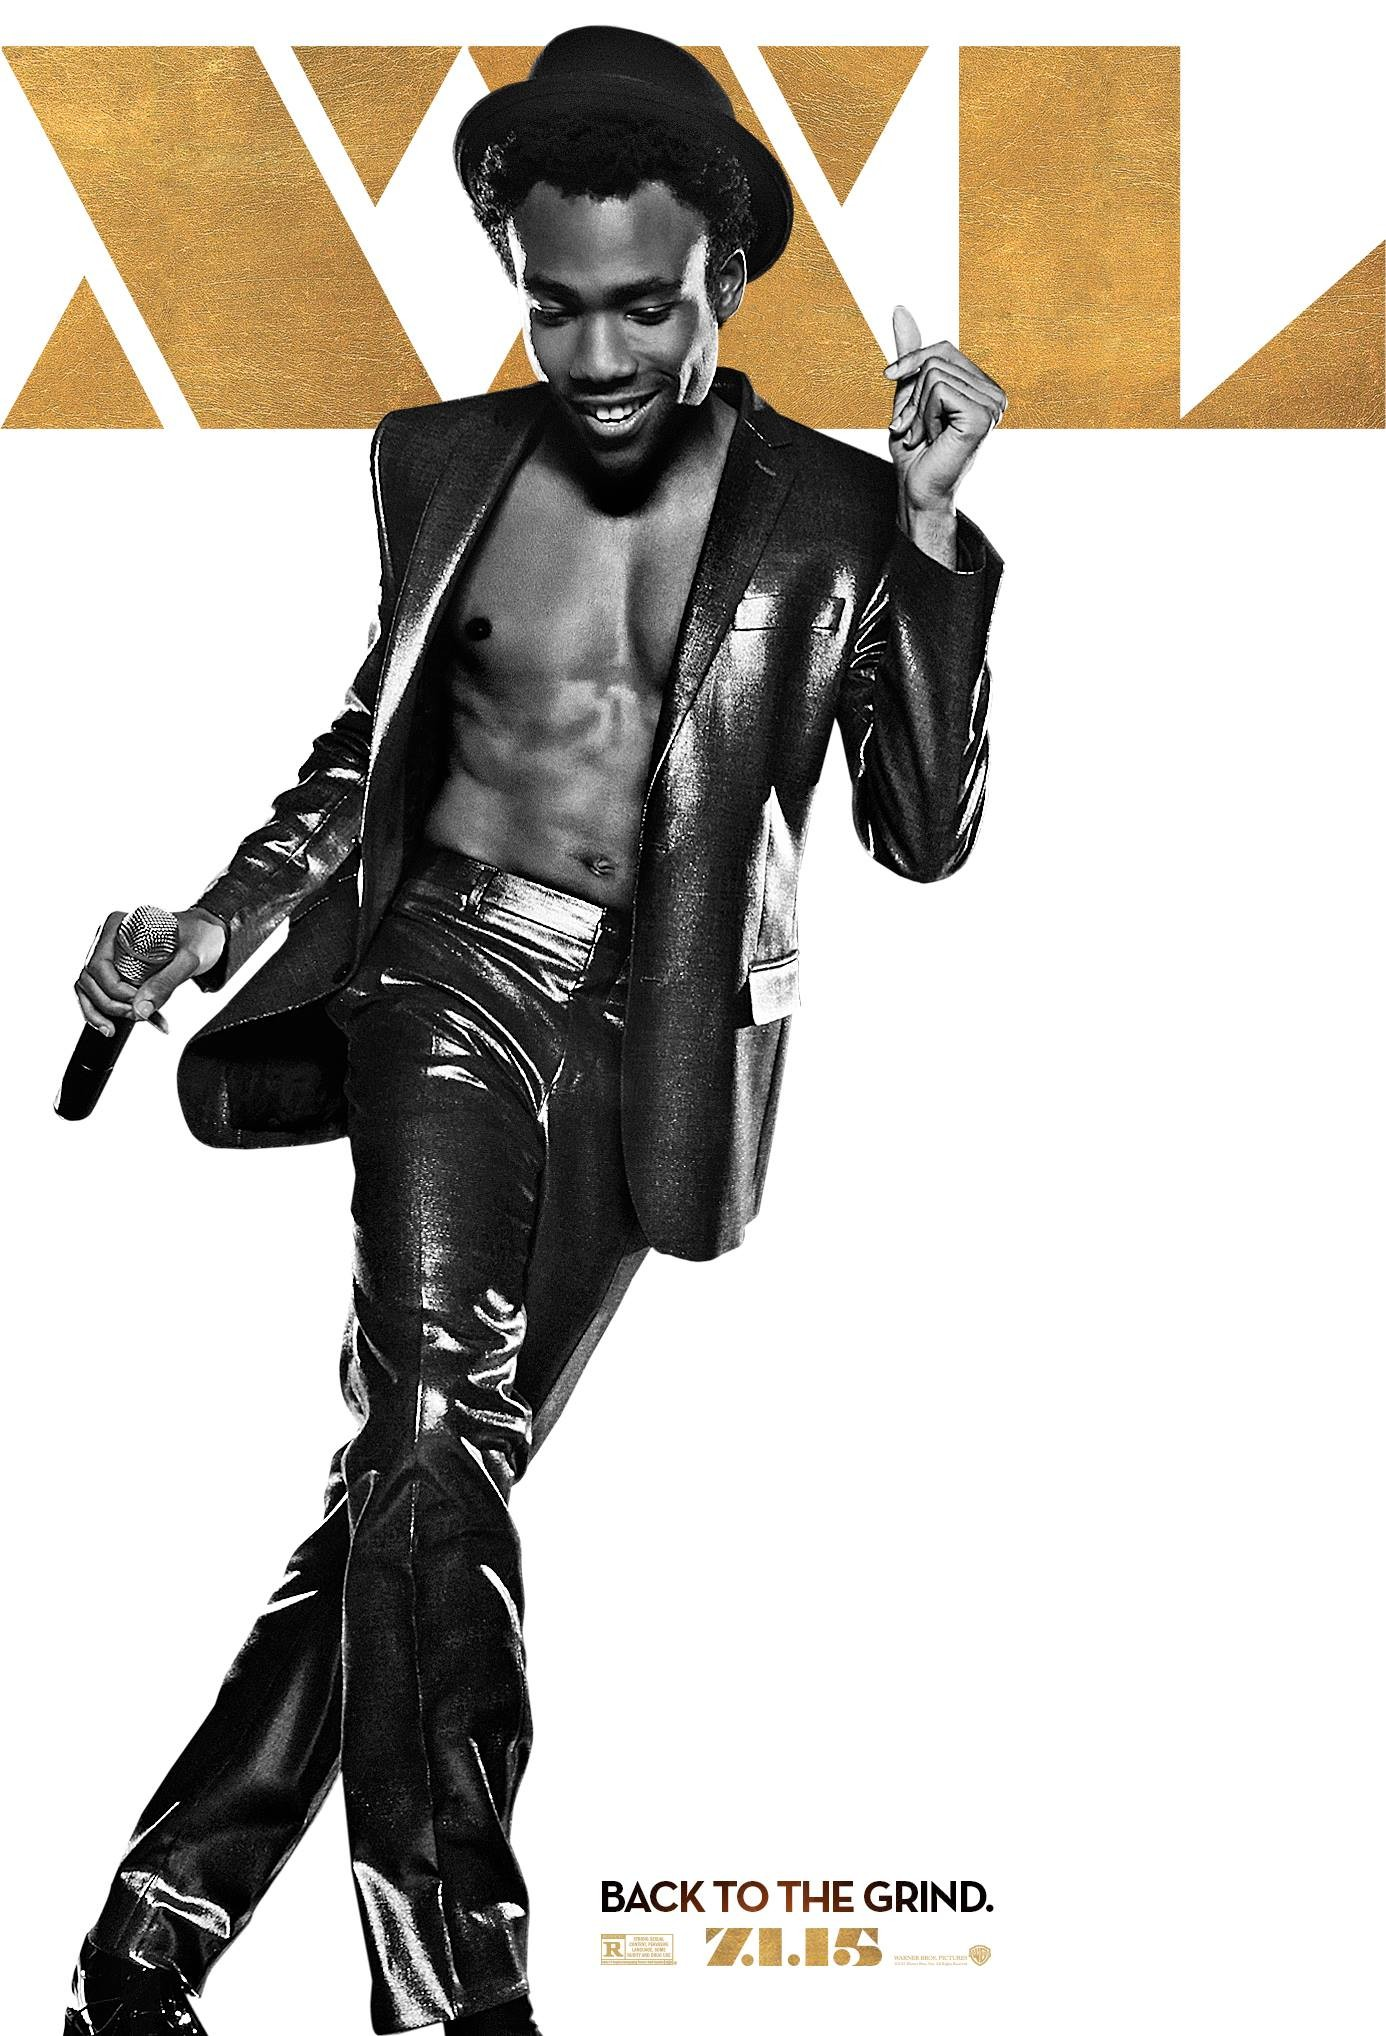 magic mike xxl poster donald glover. Black Bedroom Furniture Sets. Home Design Ideas